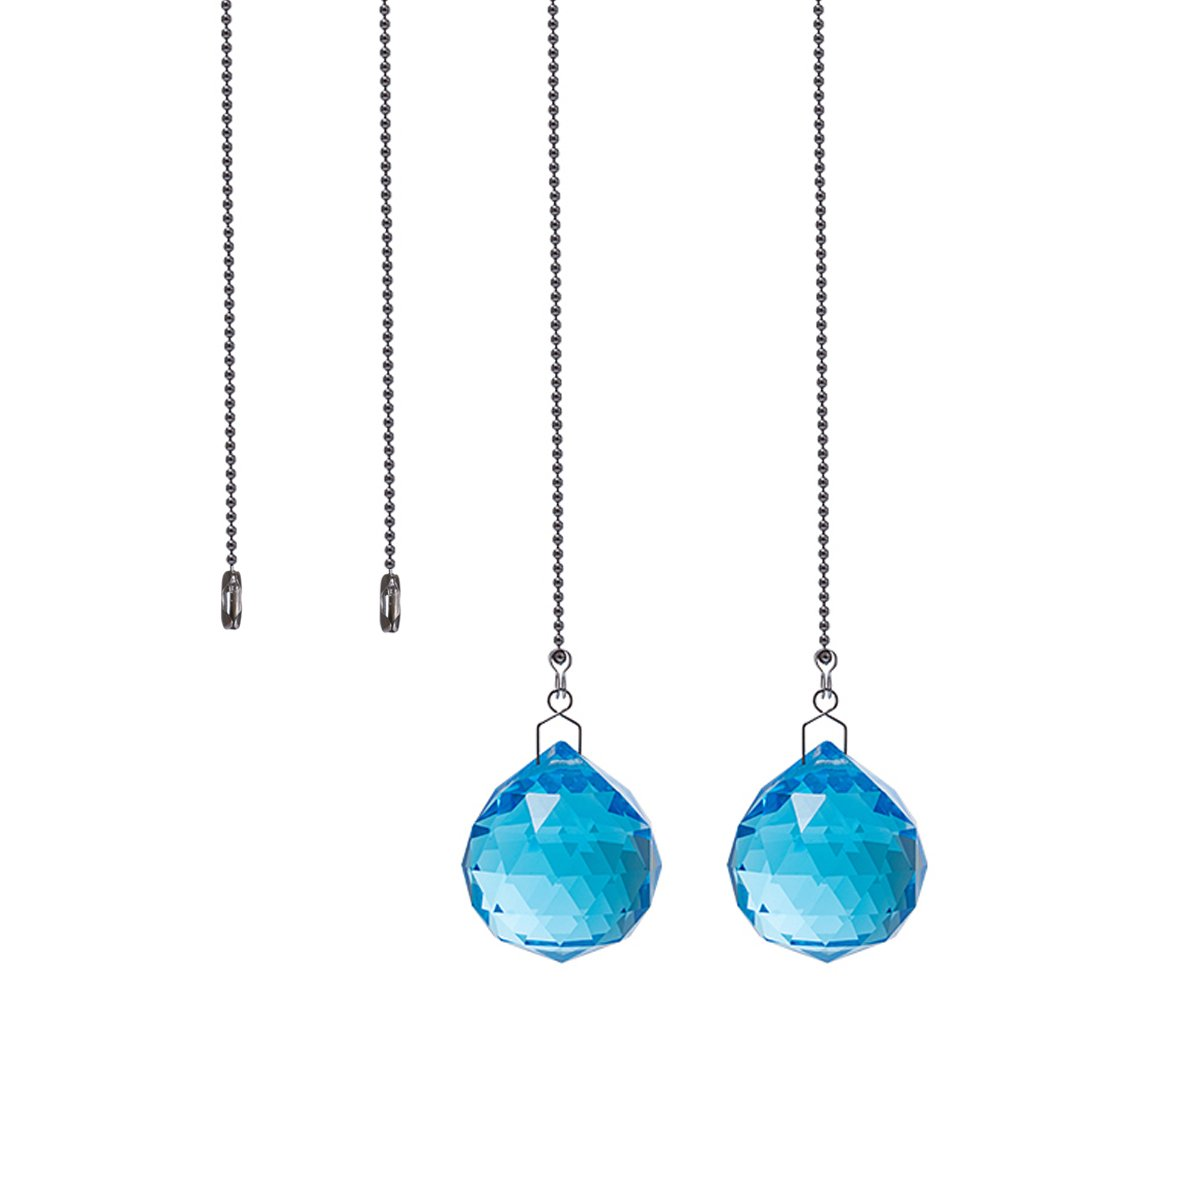 Crystal Ceiling Fan Pull Chains Pack of 2 40mm Blue Crystal Prism With 2 Free Pull Chain Extension Adjustable Length